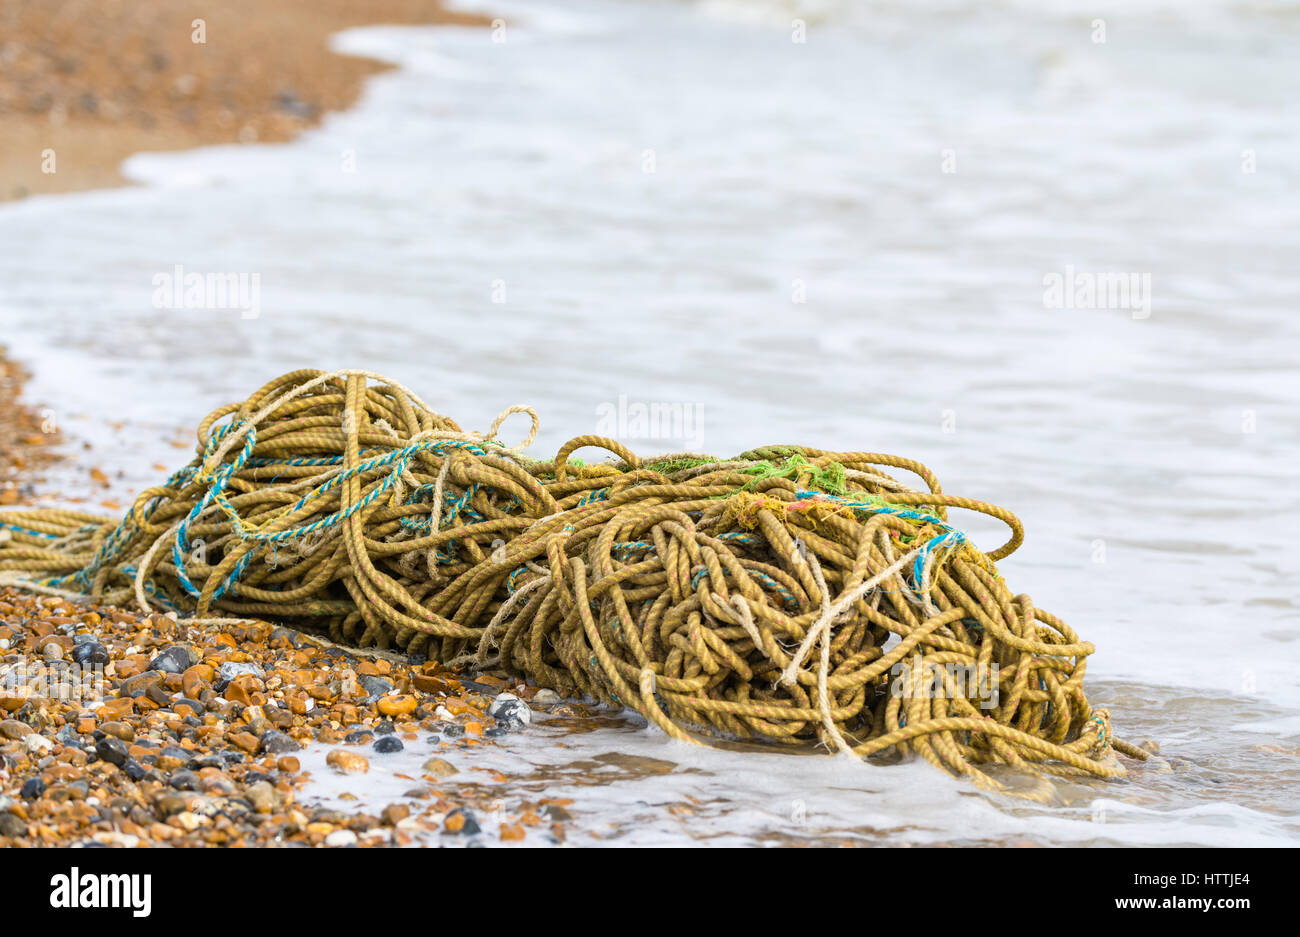 Discarded fisherman's rope washed up on a beach. - Stock Image